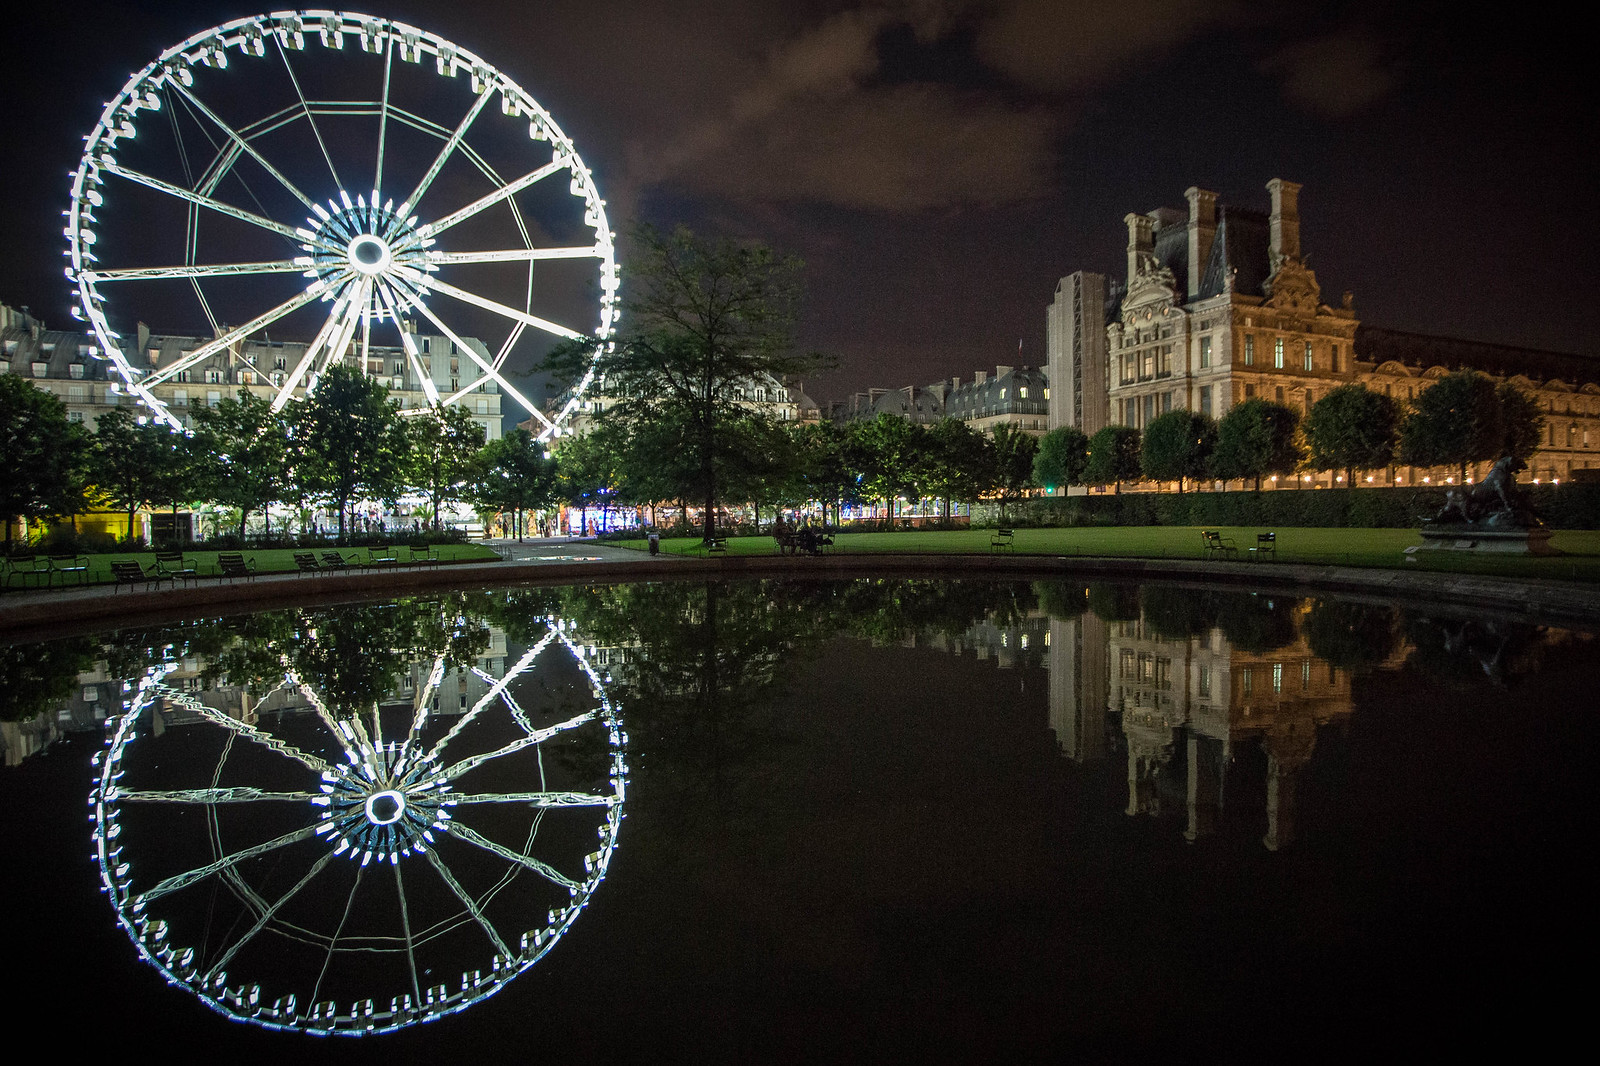 Tuileries Ferris Wheel and Louvre, Night Reflections